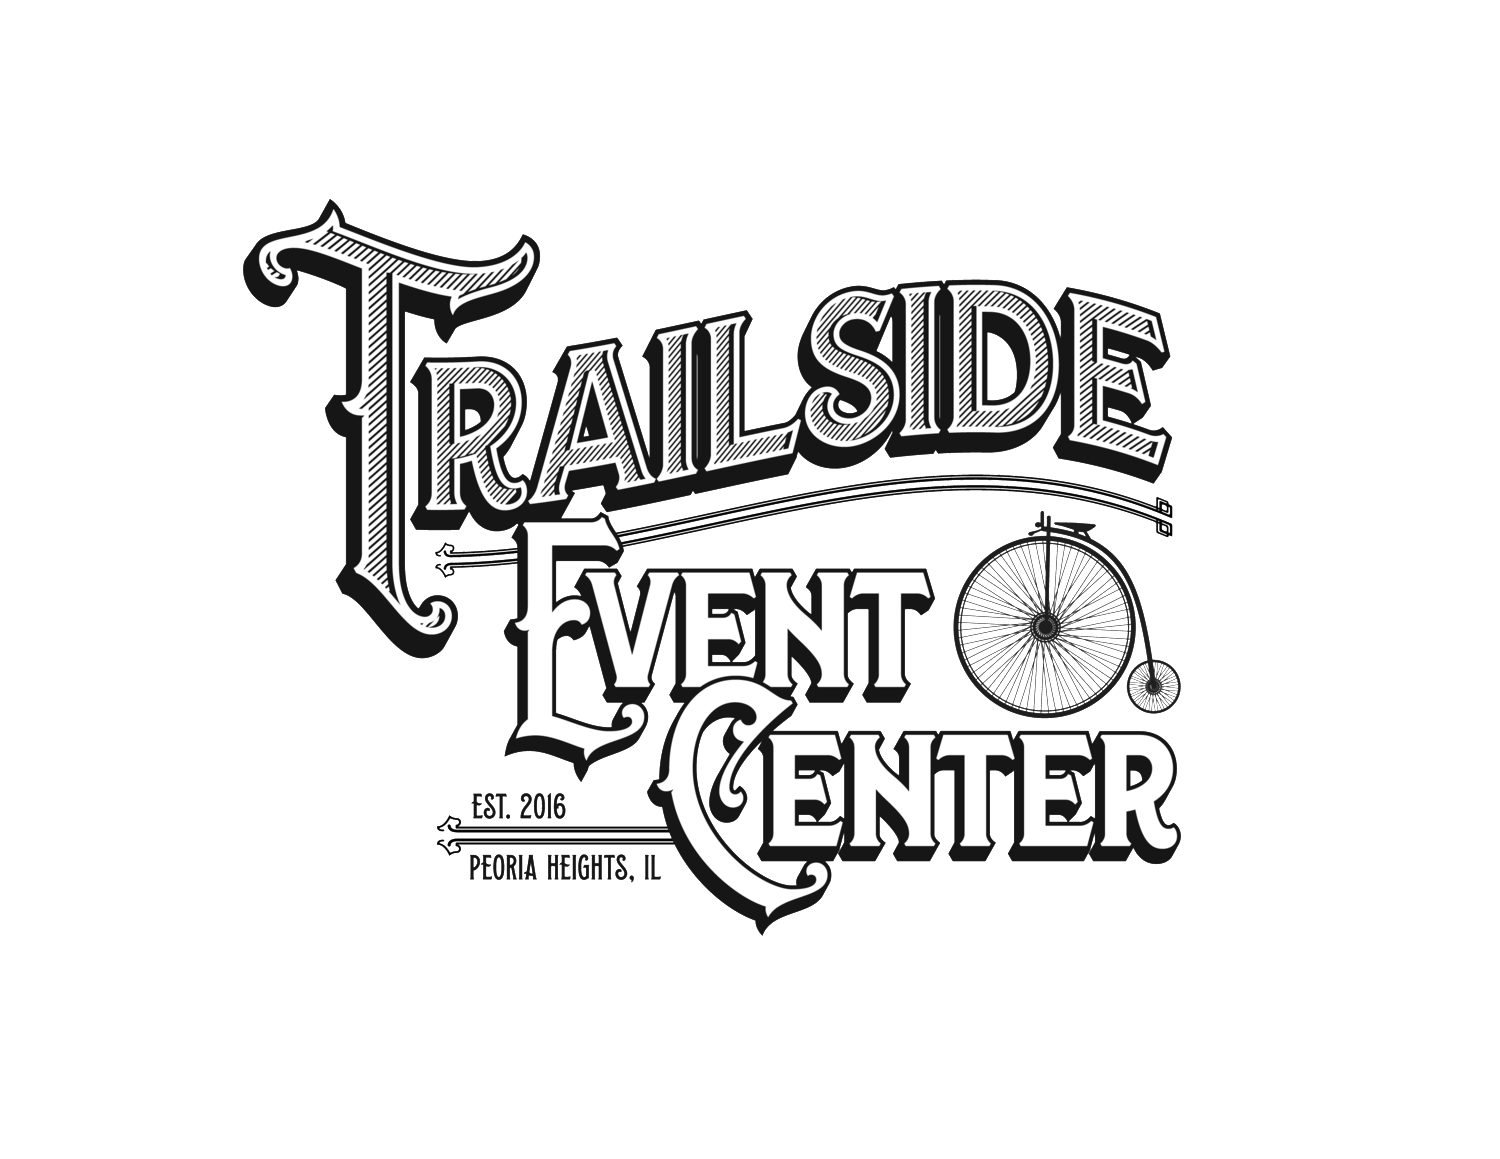 Trailside Event Center - 4416 N Prospect RdPeoria Heights, IL 61616(309) 740-7171Official Website